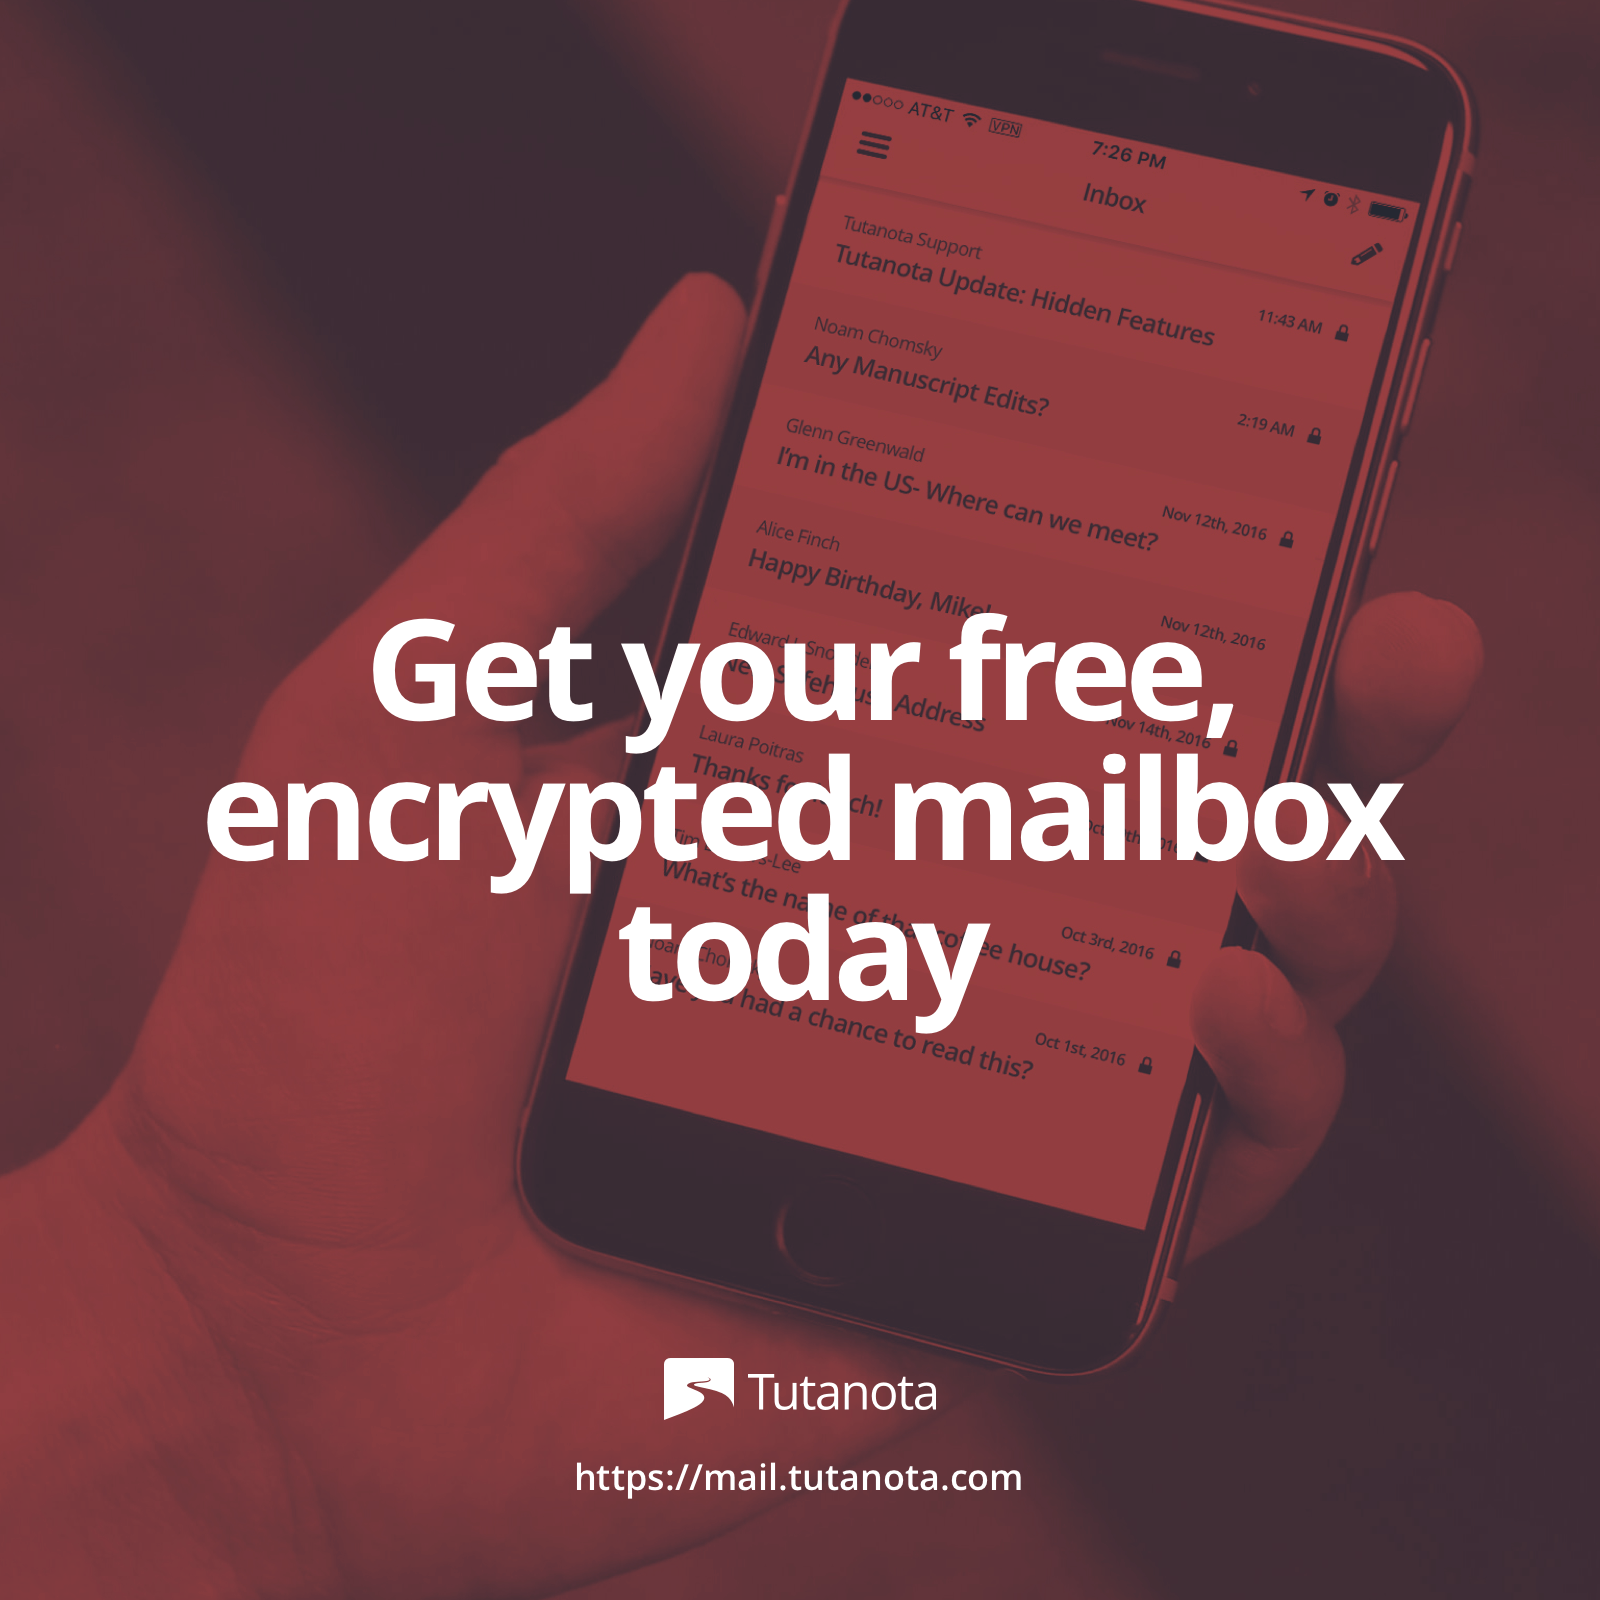 Secure email: Tutanota makes free encrypted emails easy